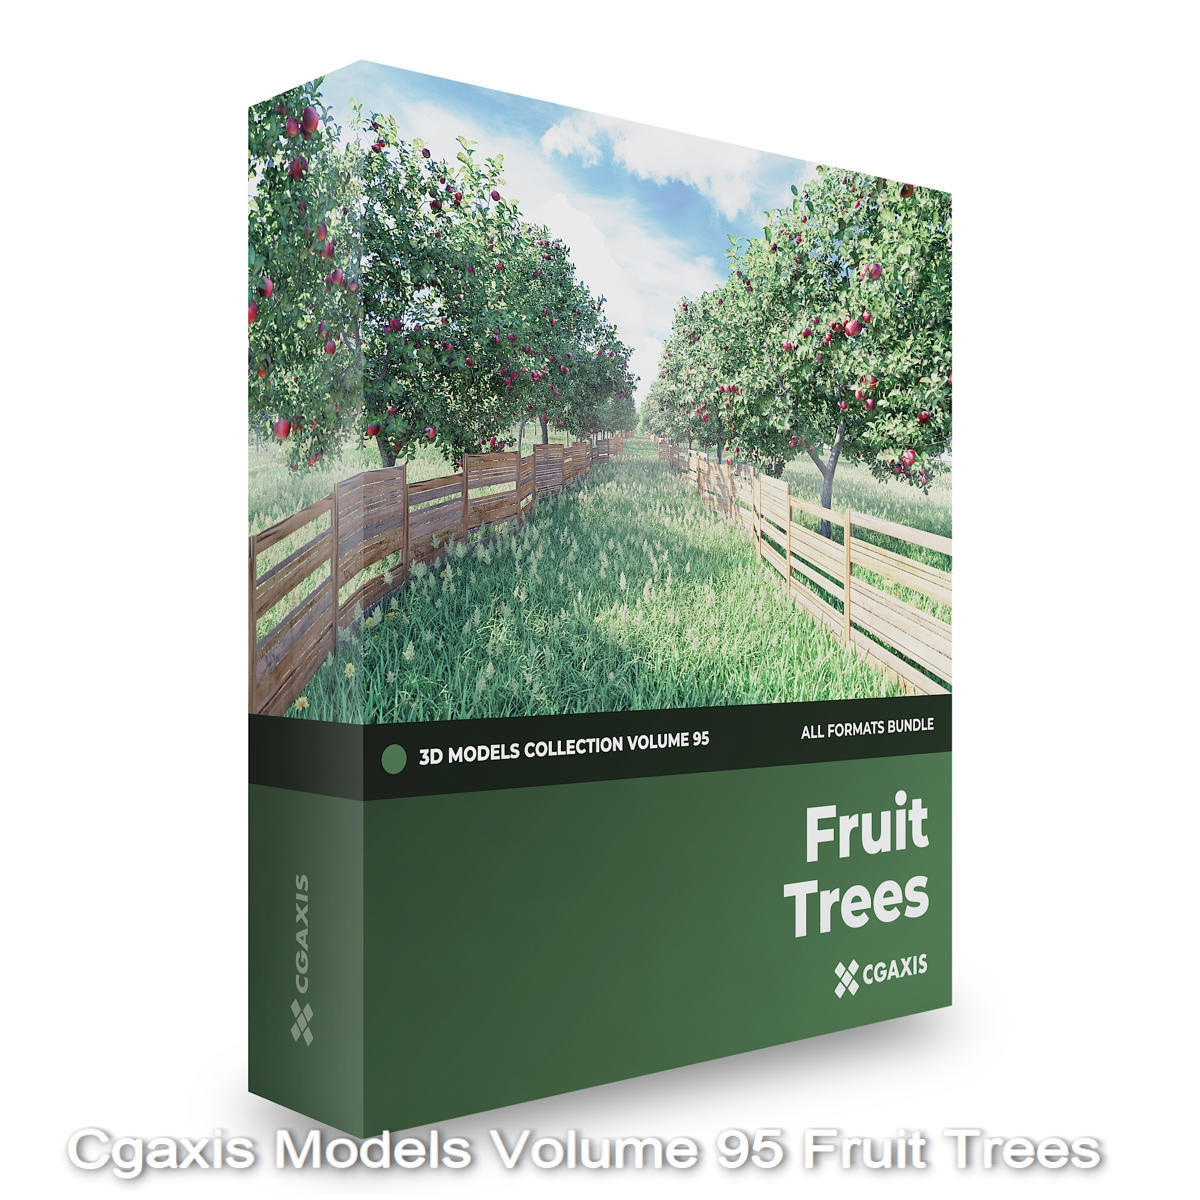 Download Cgaxis Models Volume 95 Fruit Trees